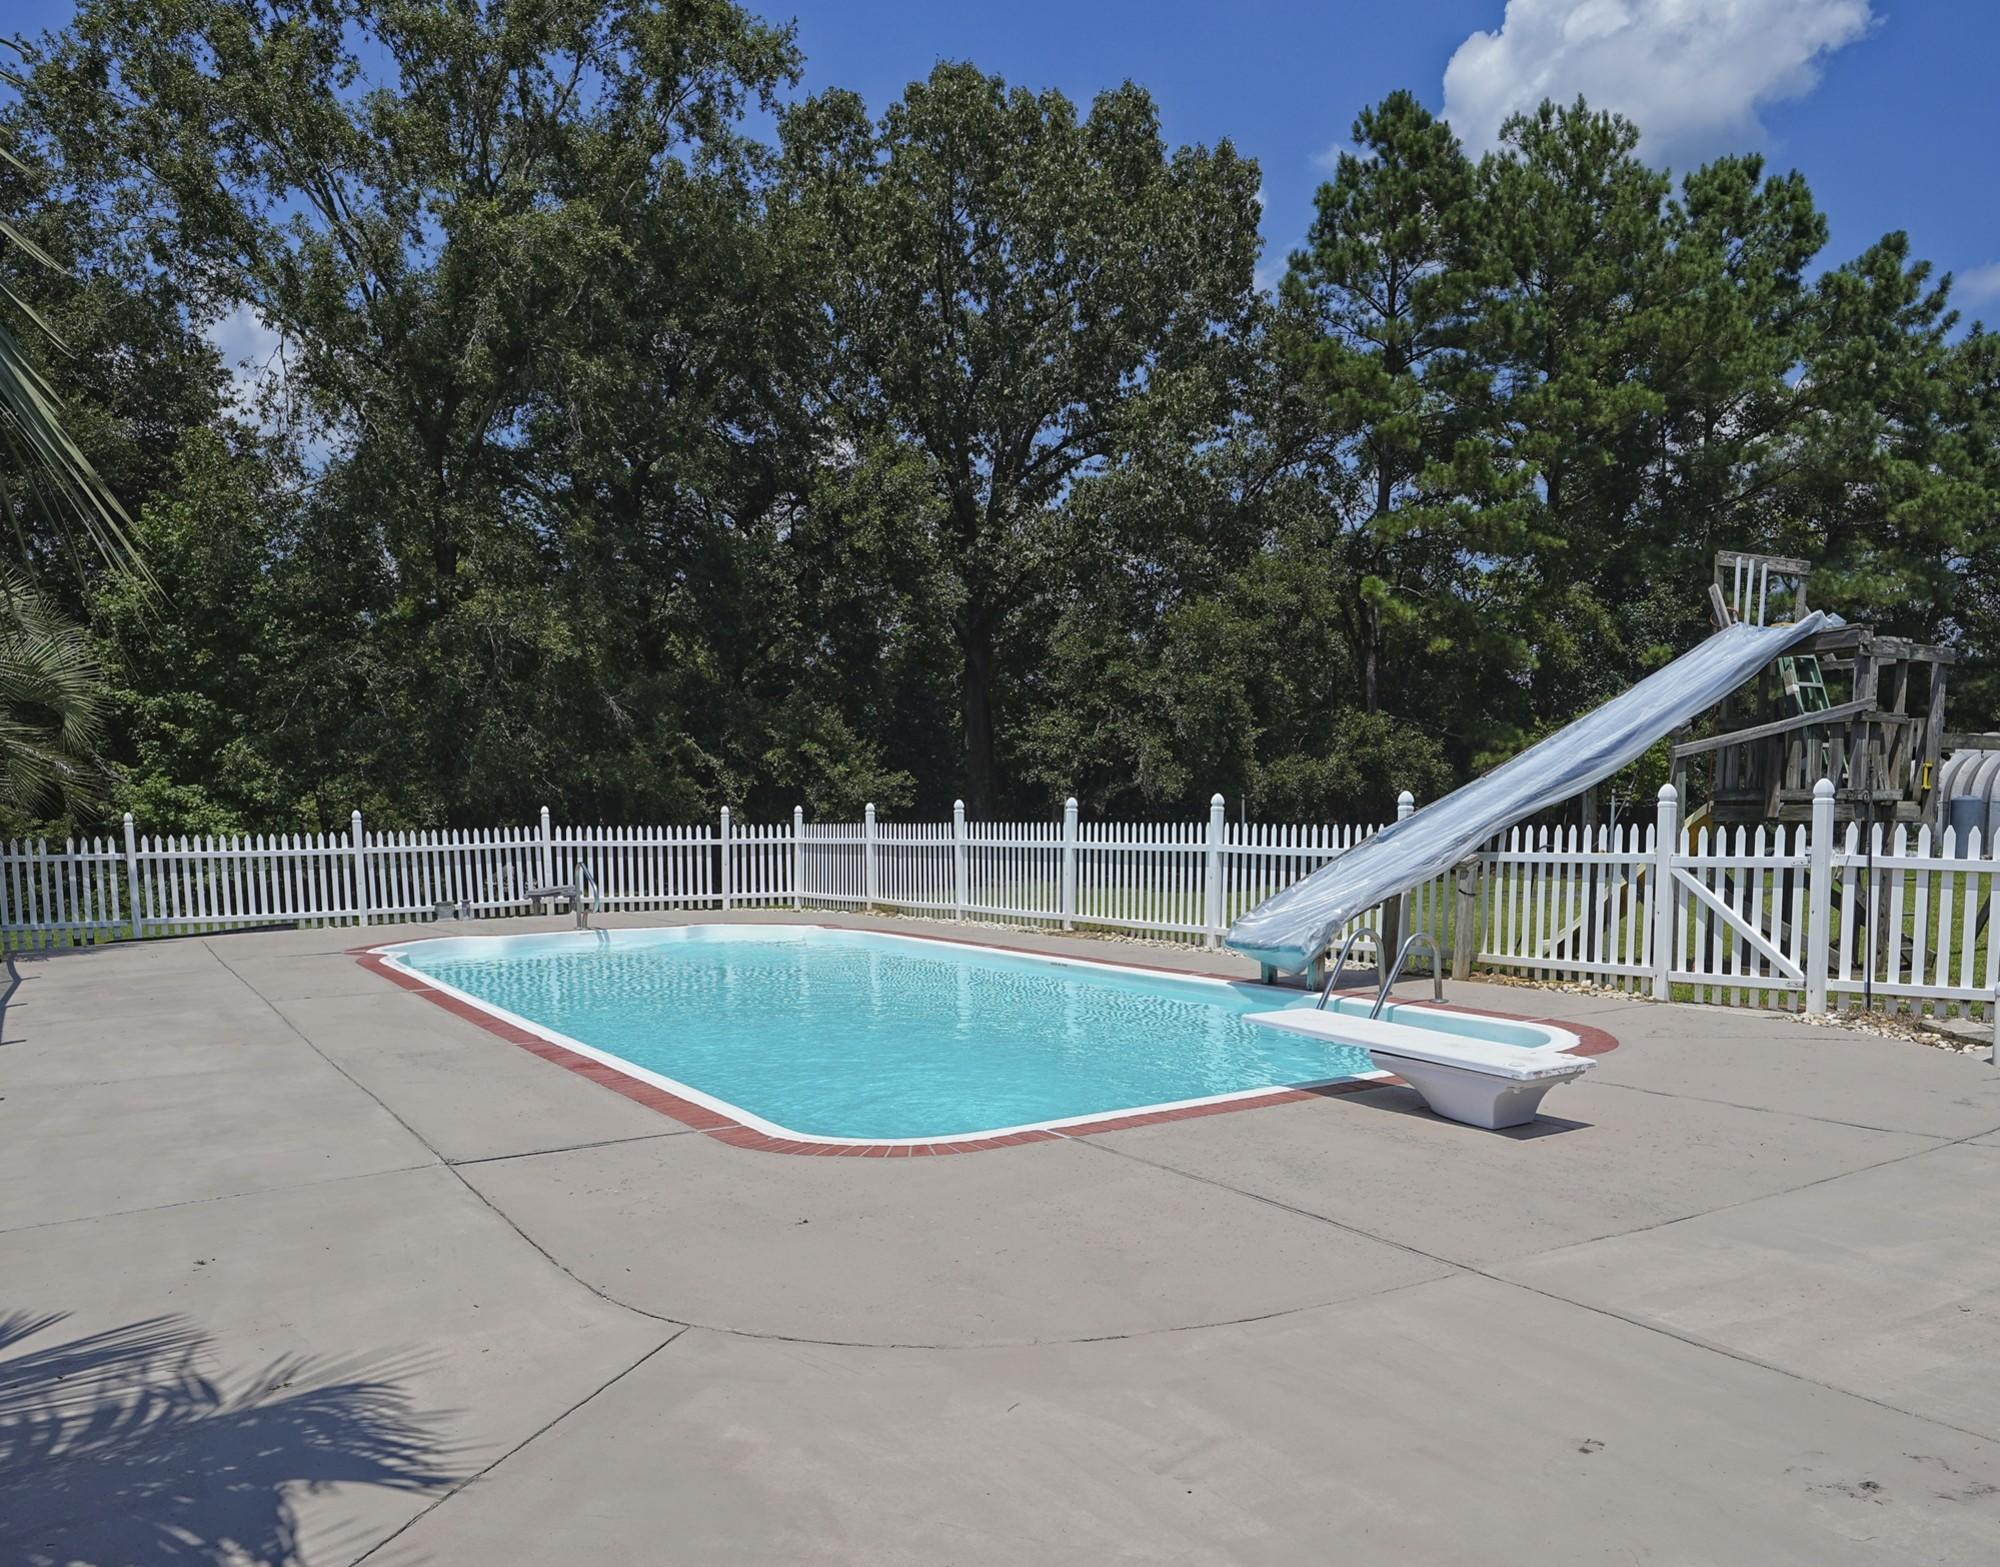 118 Swimmin Hole Lane Moncks Corner, SC 29461